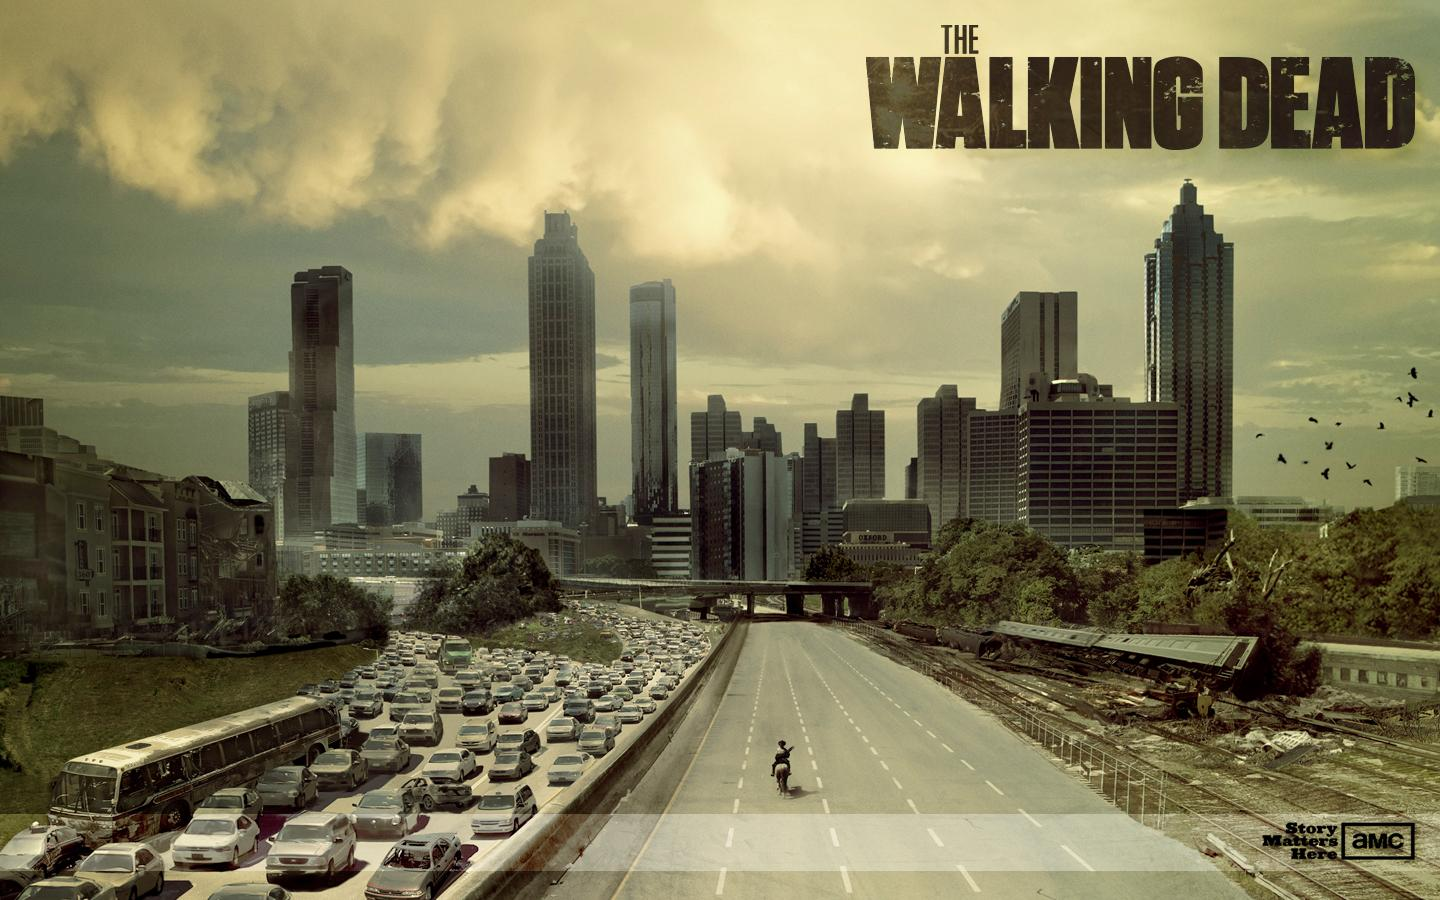 http://manhattaninfidel.org/wp-content/uploads/2013/10/The-Walking-Dead-Wallpaper1.jpg